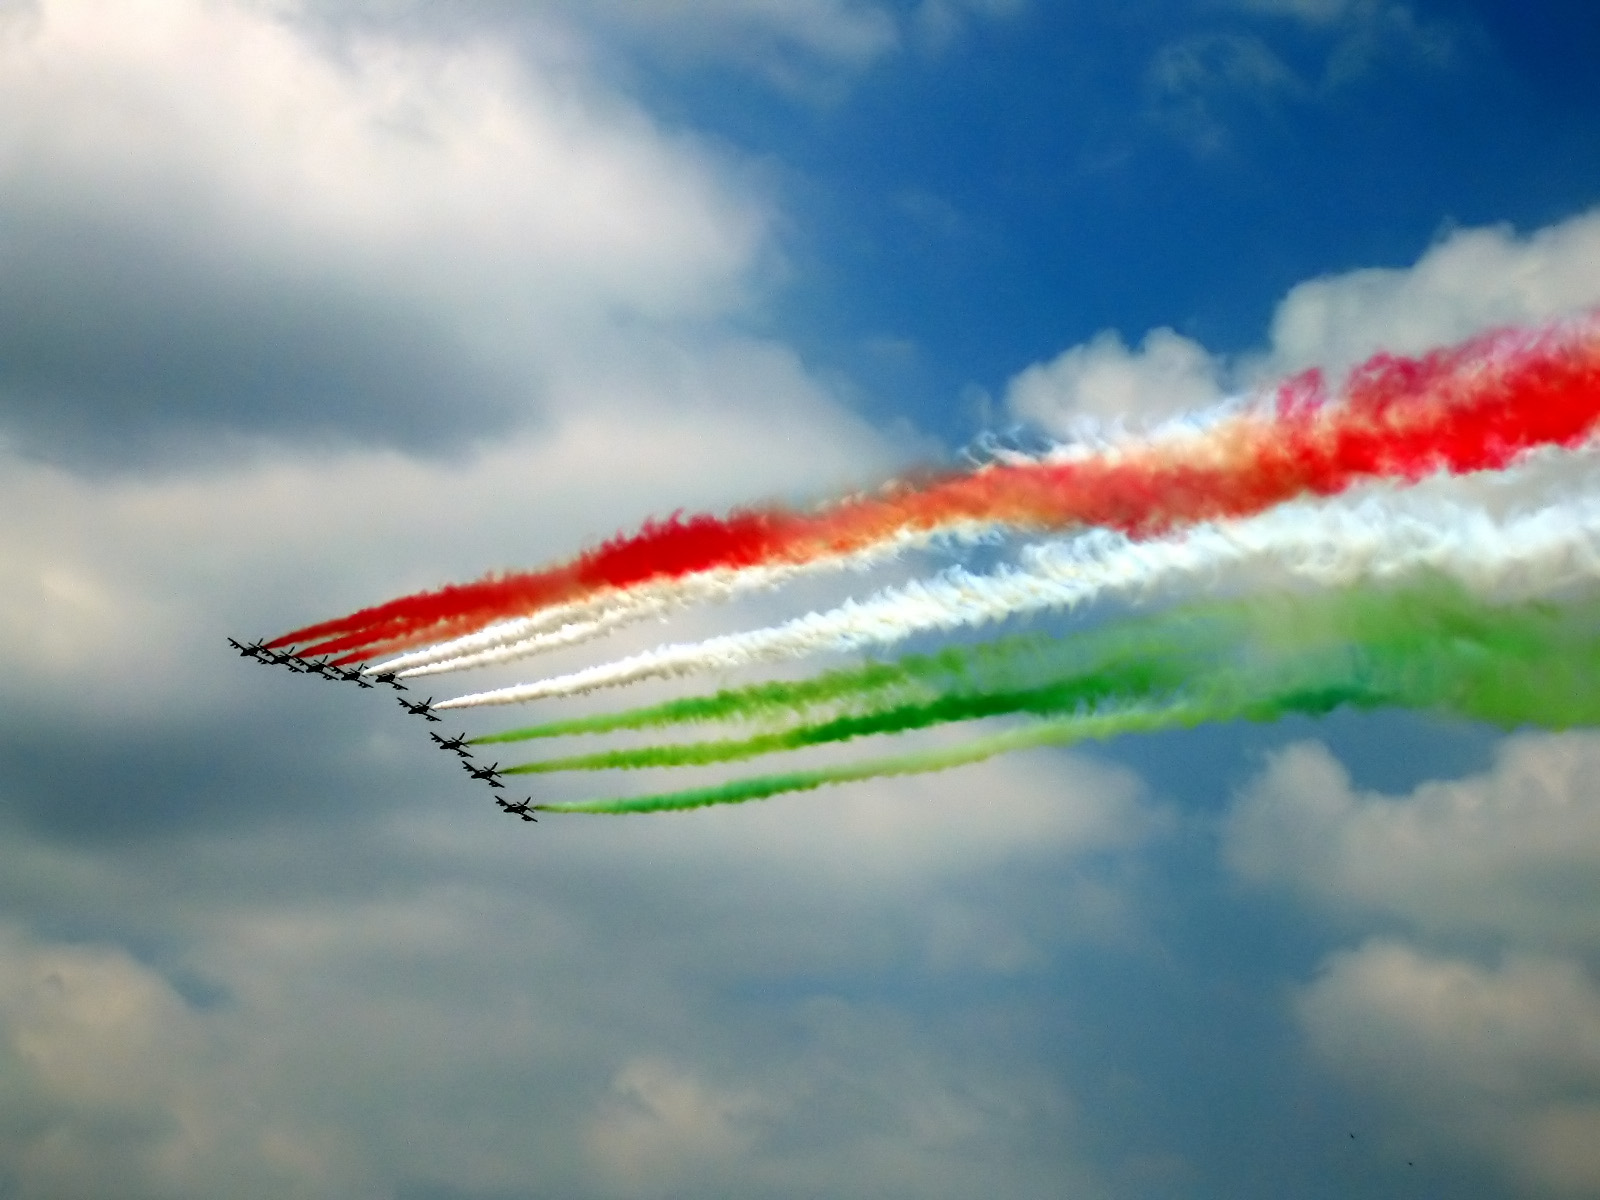 http://3.bp.blogspot.com/-MT0owqlAv7Y/UQZaAq8EUjI/AAAAAAAAAVA/-QDGeCxVAzc/s1600/indian_flag_wallpapers.jpg